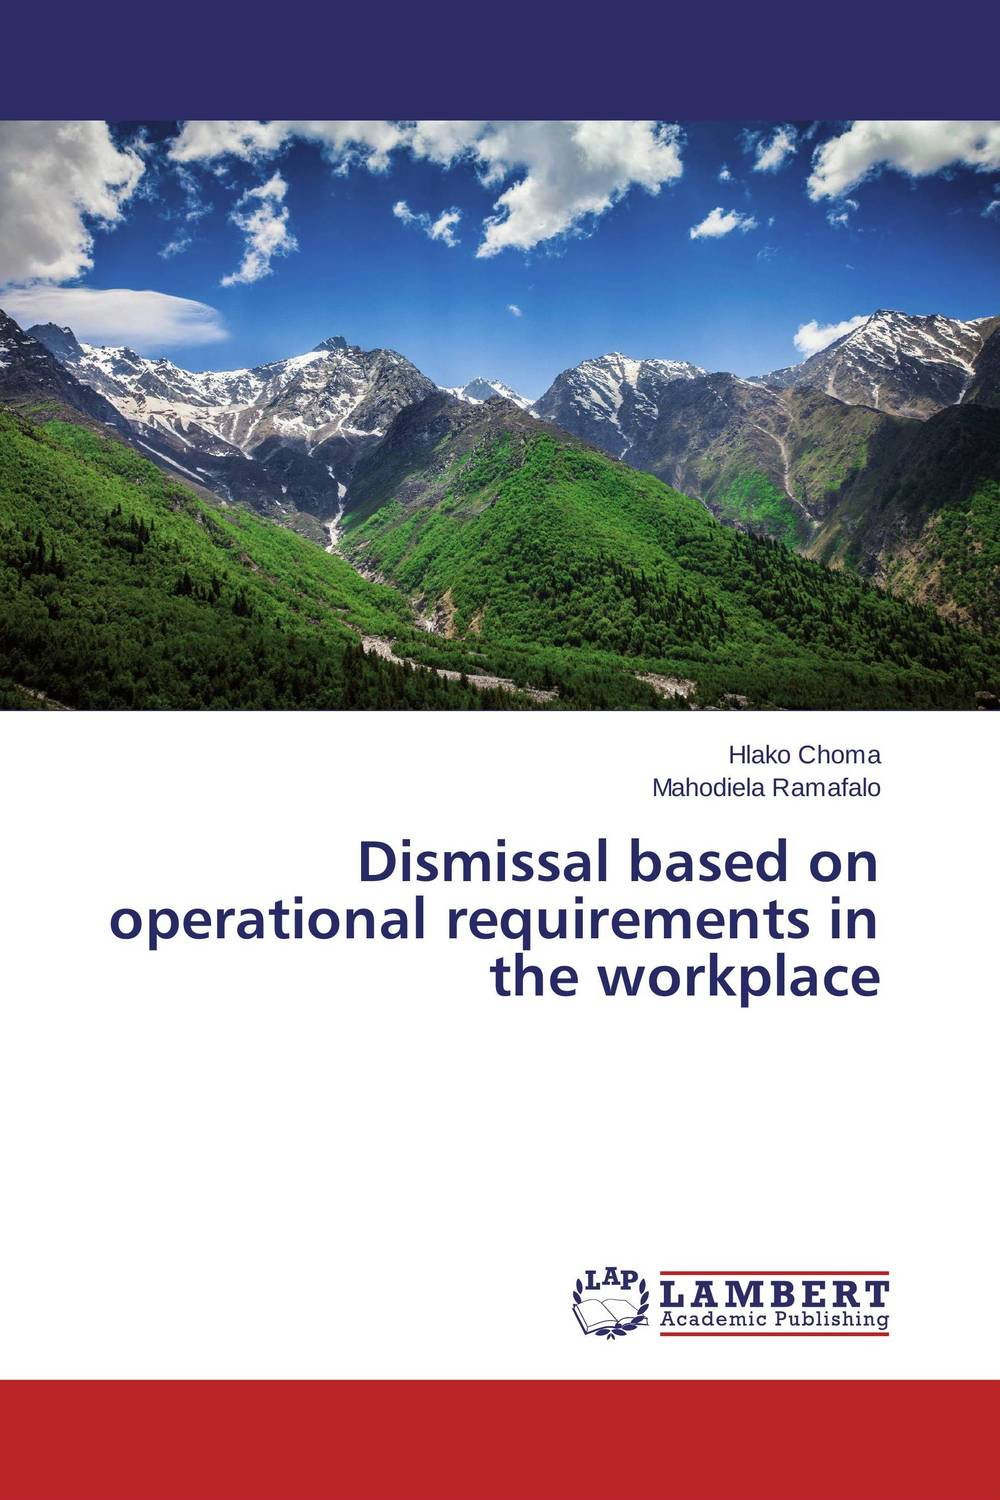 Dismissal based on operational requirements in the workplace hlako choma and mahodiela ramafalo dismissal based on operational requirements in the workplace